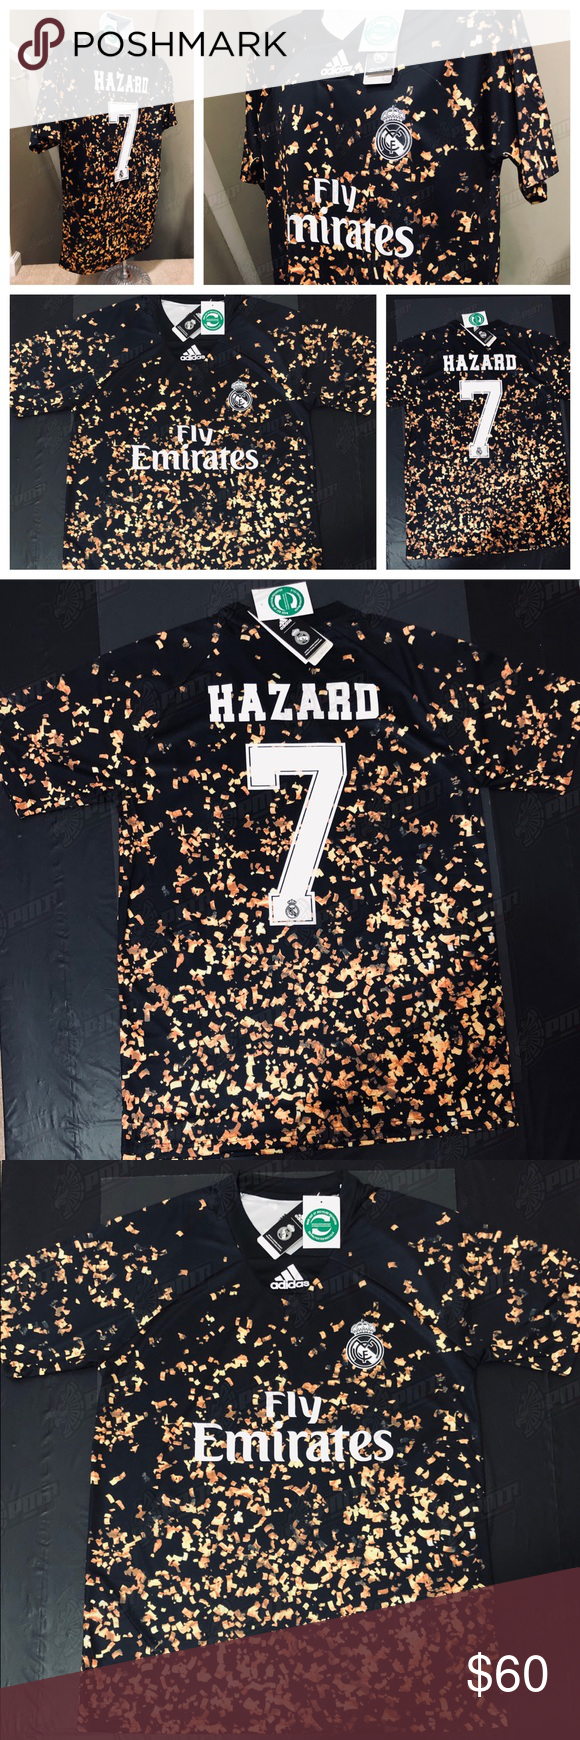 2020 Ea Sports Real Madrid Hazard 7 Soccer Jersey Real Madrid Cf 2019 2020 Season Just Released December 12 2019 L Soccer Jersey Ea Sports Real Madrid